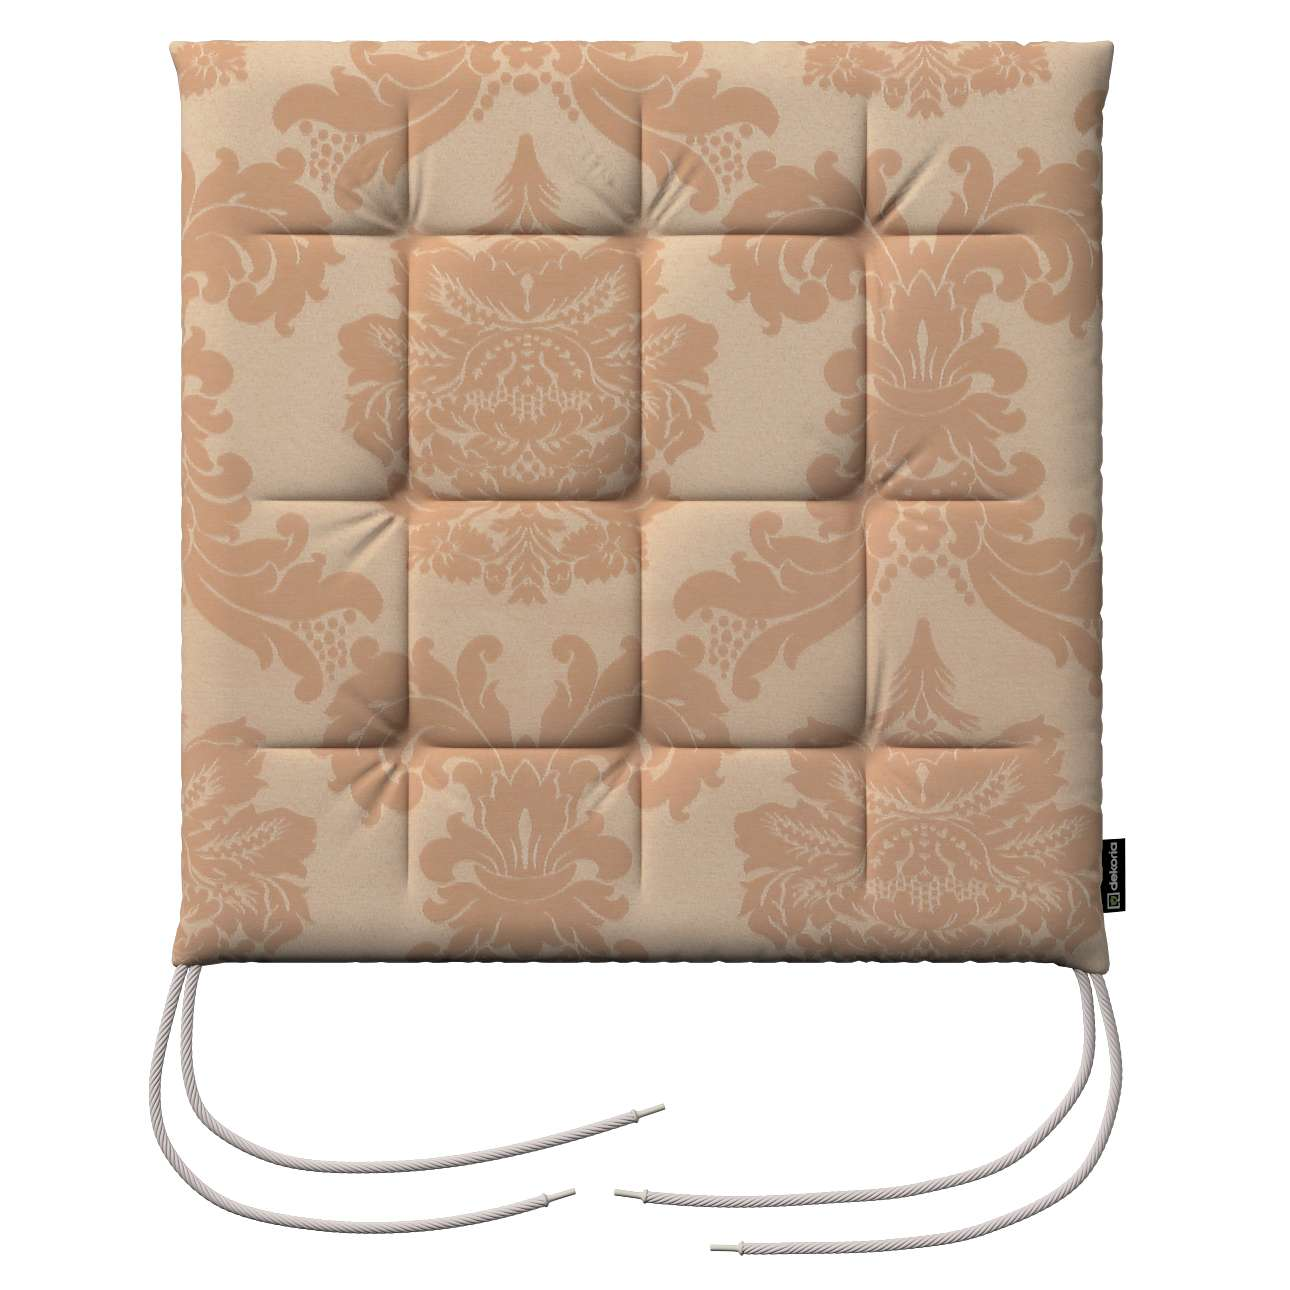 Karol seat pad with ties 40 x 40 x 3,5 cm (16 x 16 x1,5 inch) in collection Damasco, fabric: 613-04